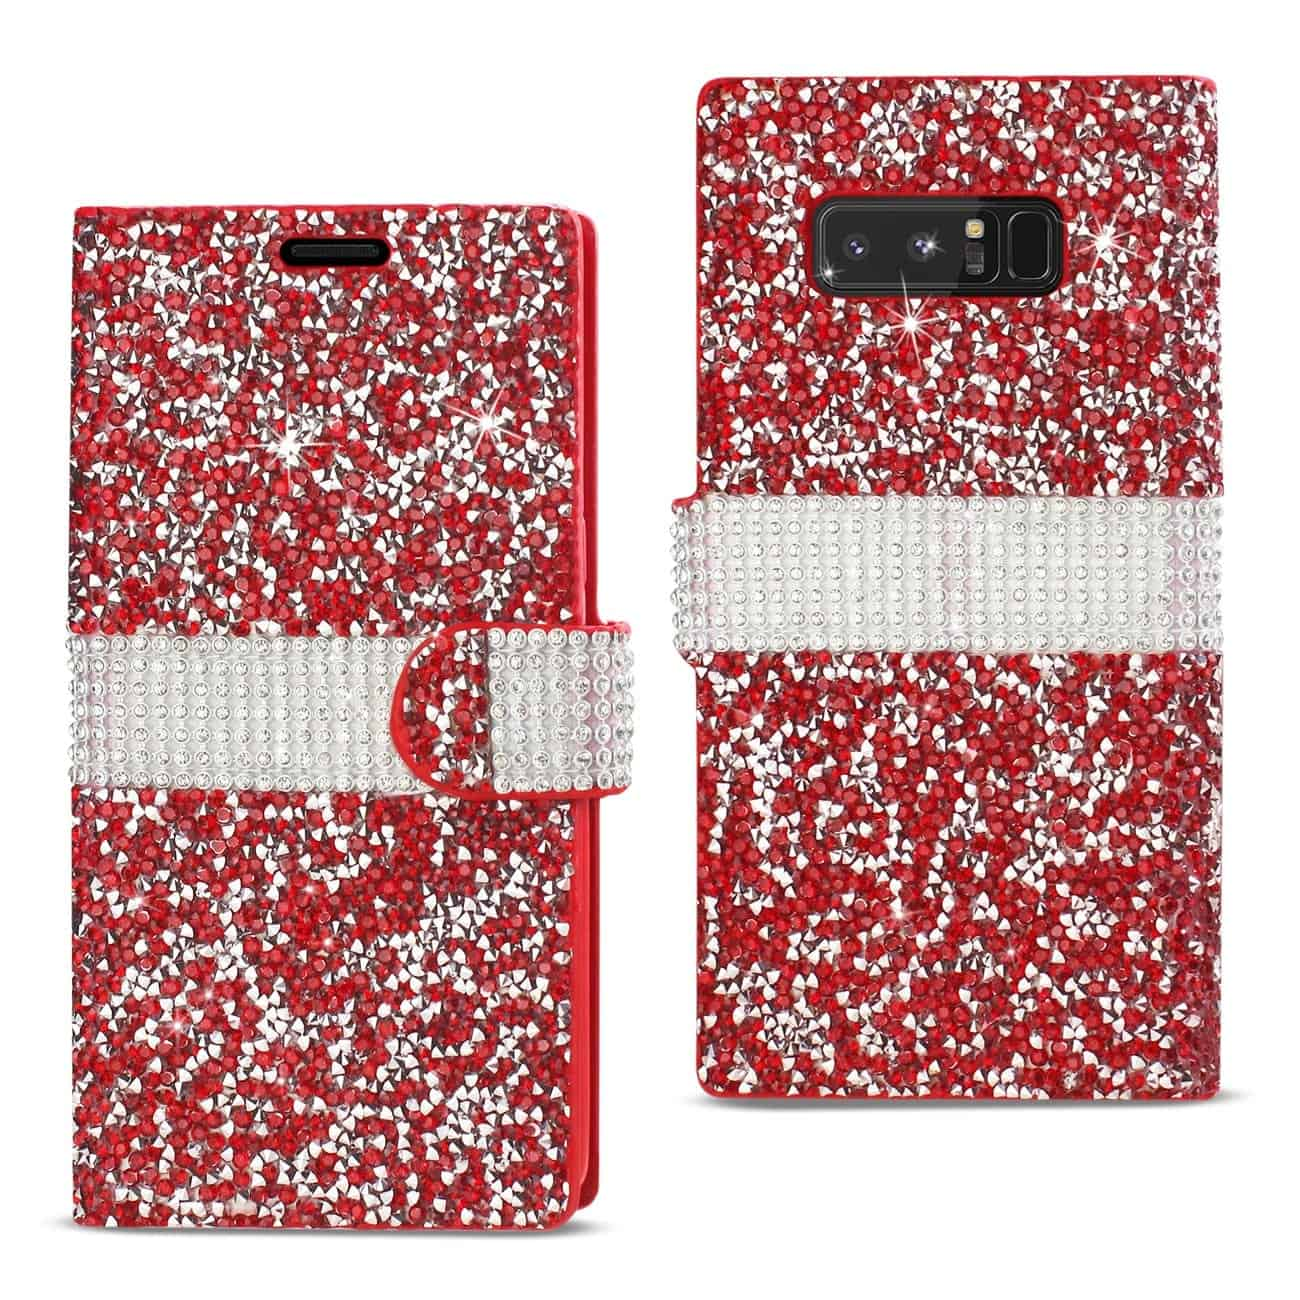 SAMSUNG GALAXY NOTE 8 DIAMOND RHINESTONE WALLET CASE IN RED